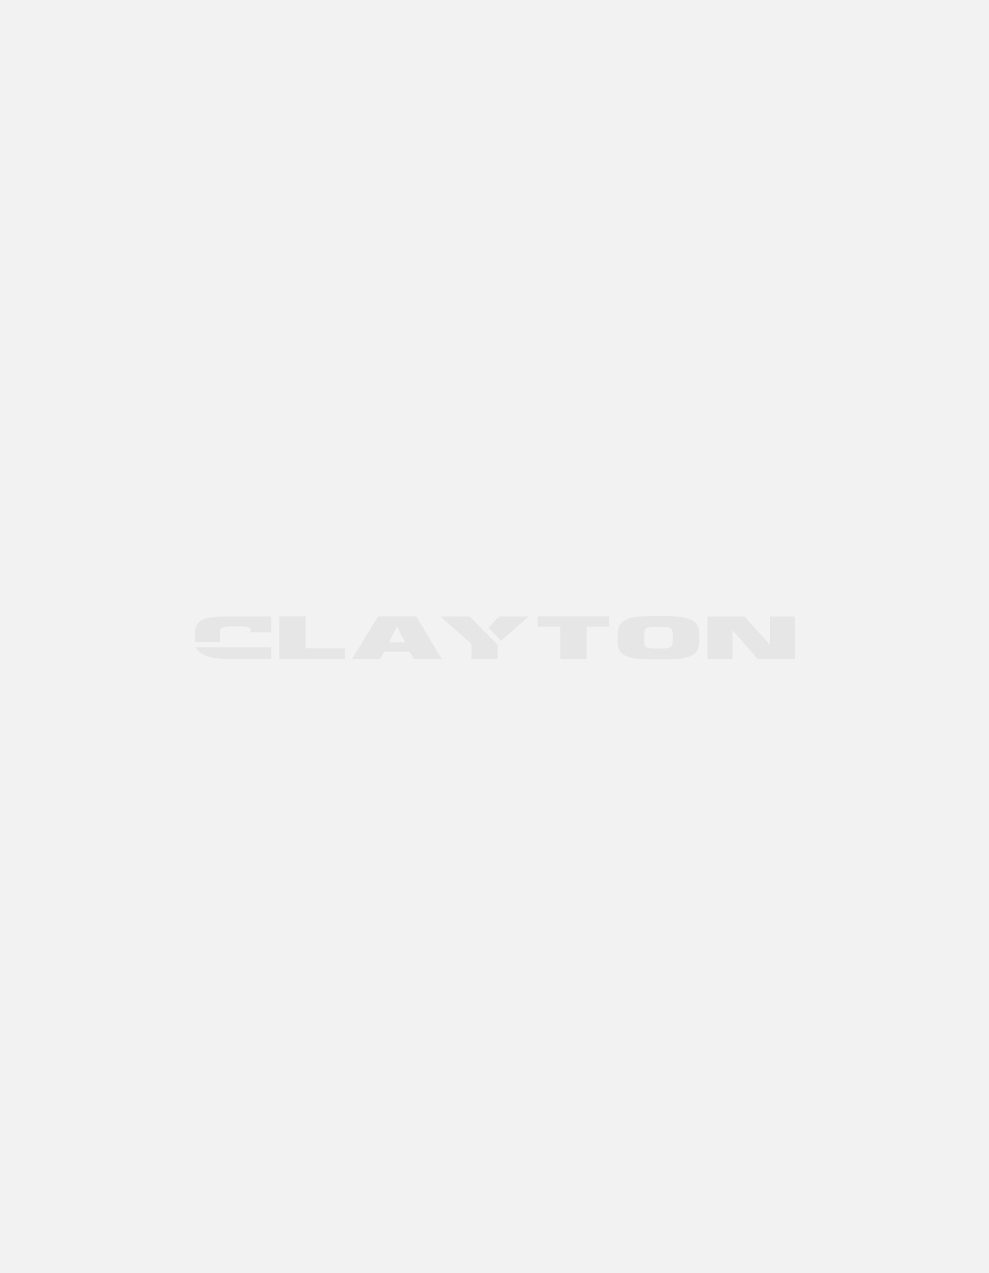 https://www.claytonitalia.com/media/catalog/product/cache/2/small_image/460x590/9df78eab33525d08d6e5fb8d27136e95/g/i/gift57_nt.jpg